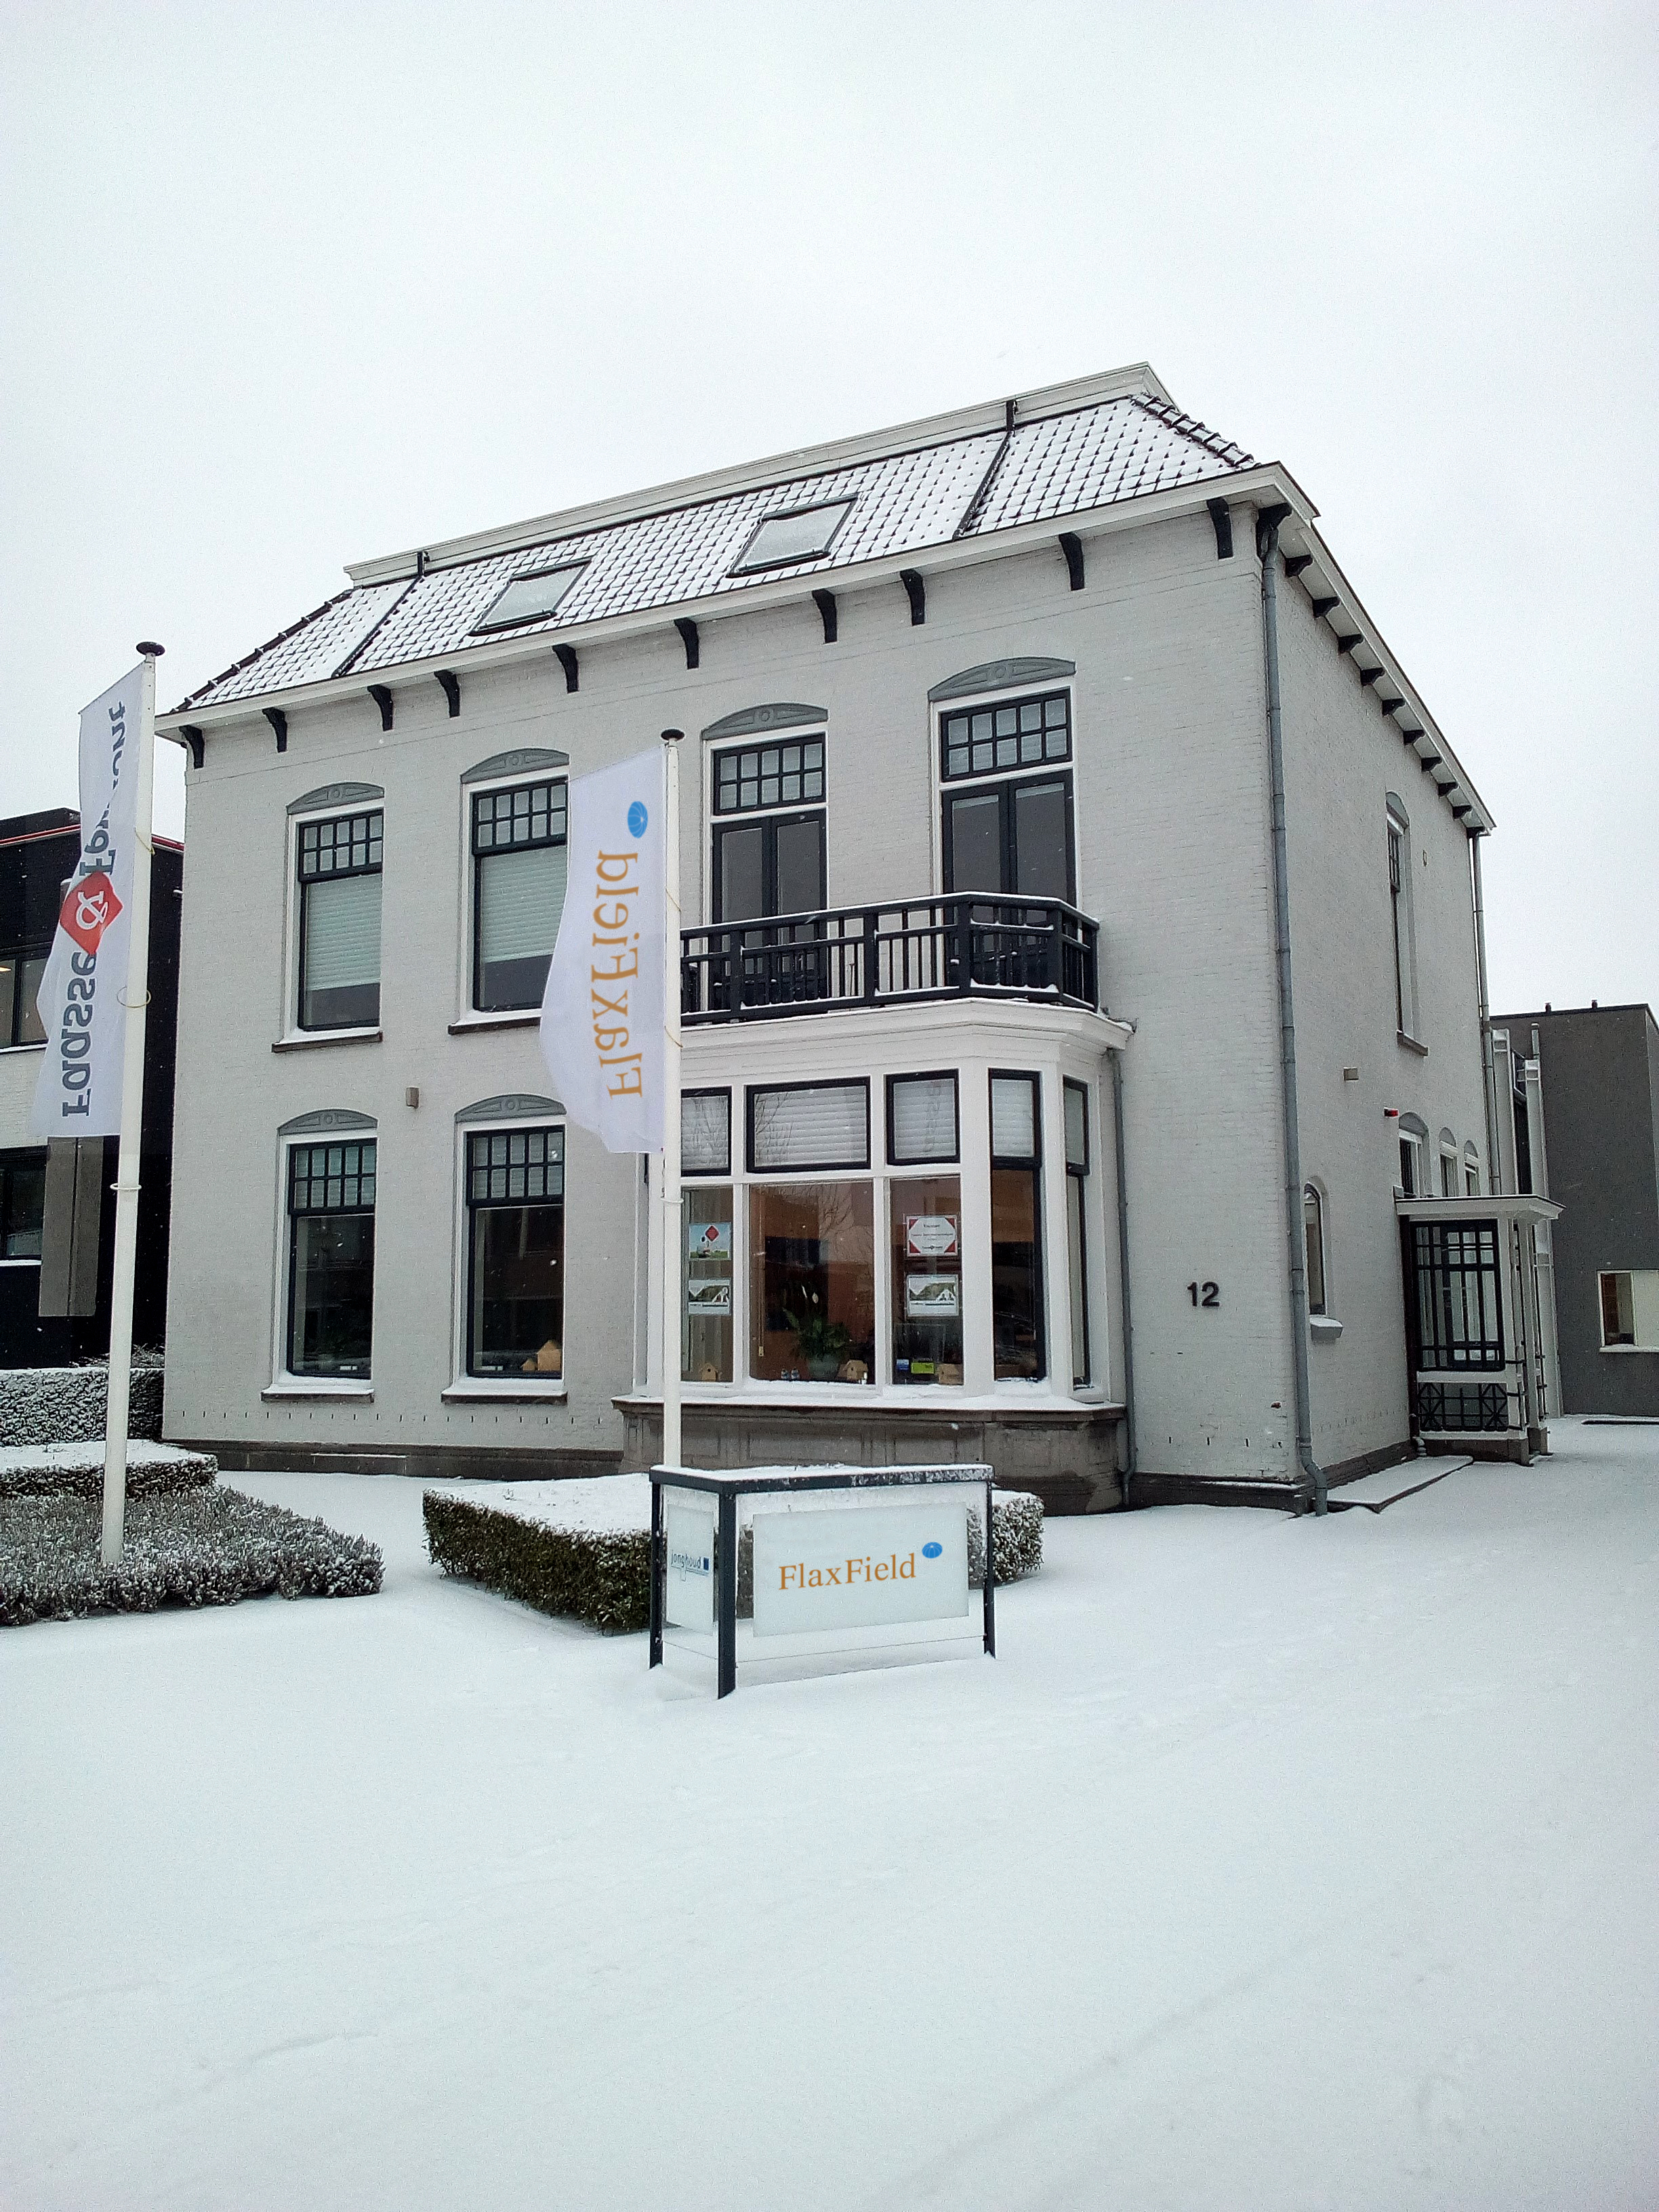 FlaxField office in Goes, the Netherlands.